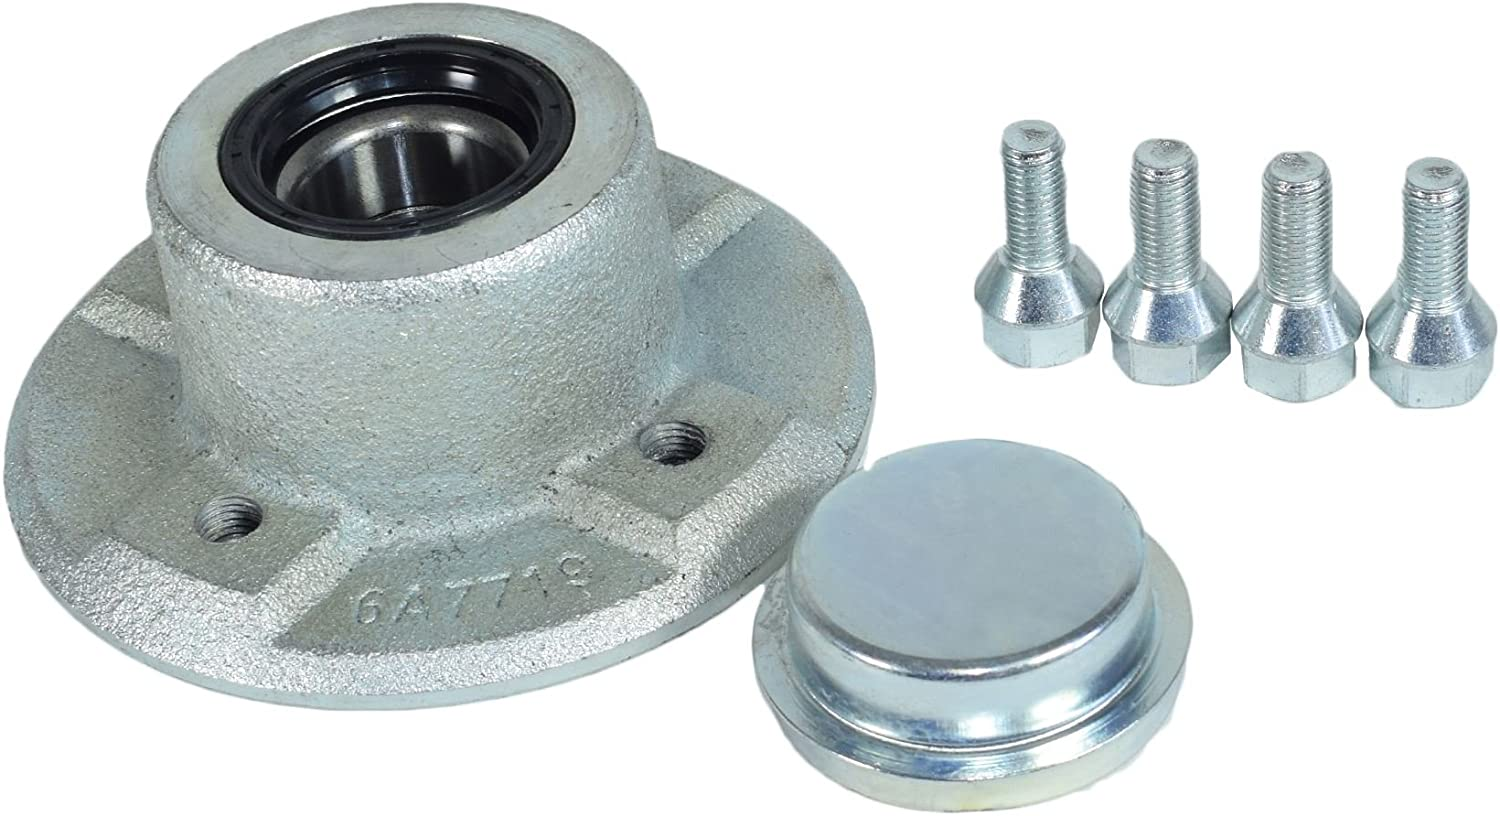 AB Tools 100mm PCD Trailer Cast Wheel f Bearings Max 74% OFF ! Super beauty product restock quality top! with Hub Sealed